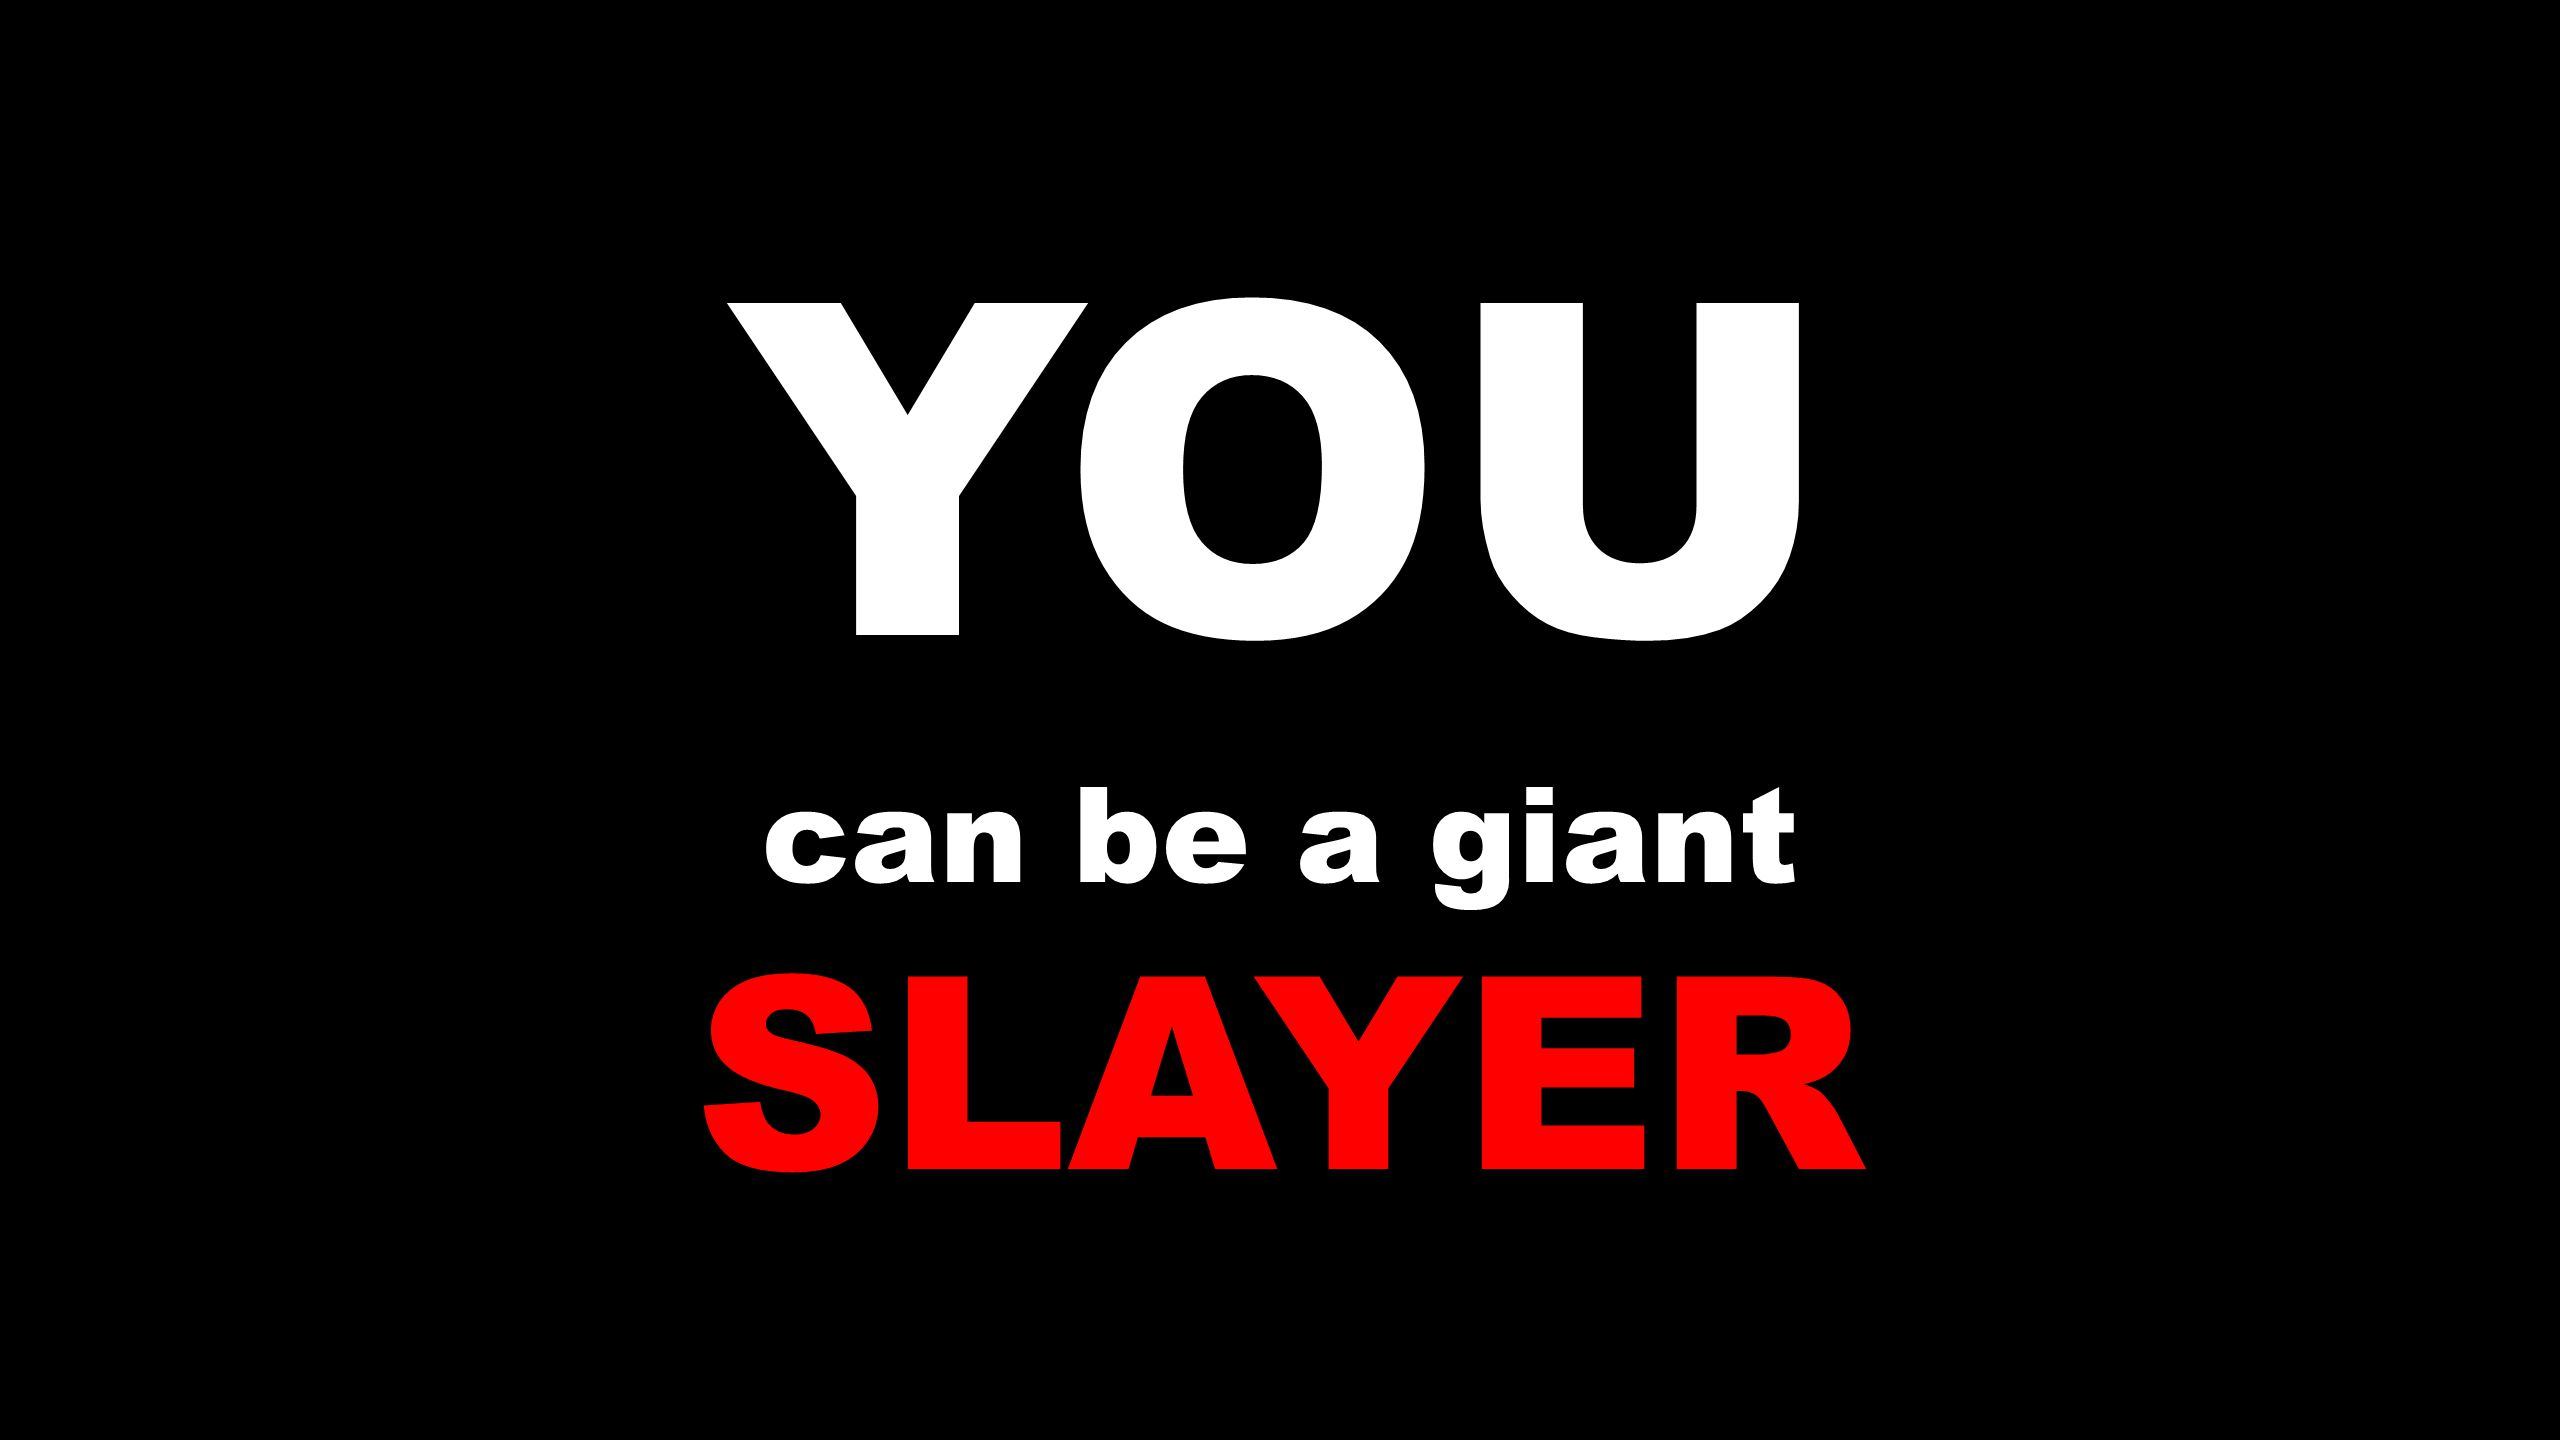 YOU can be a giant SLAYER